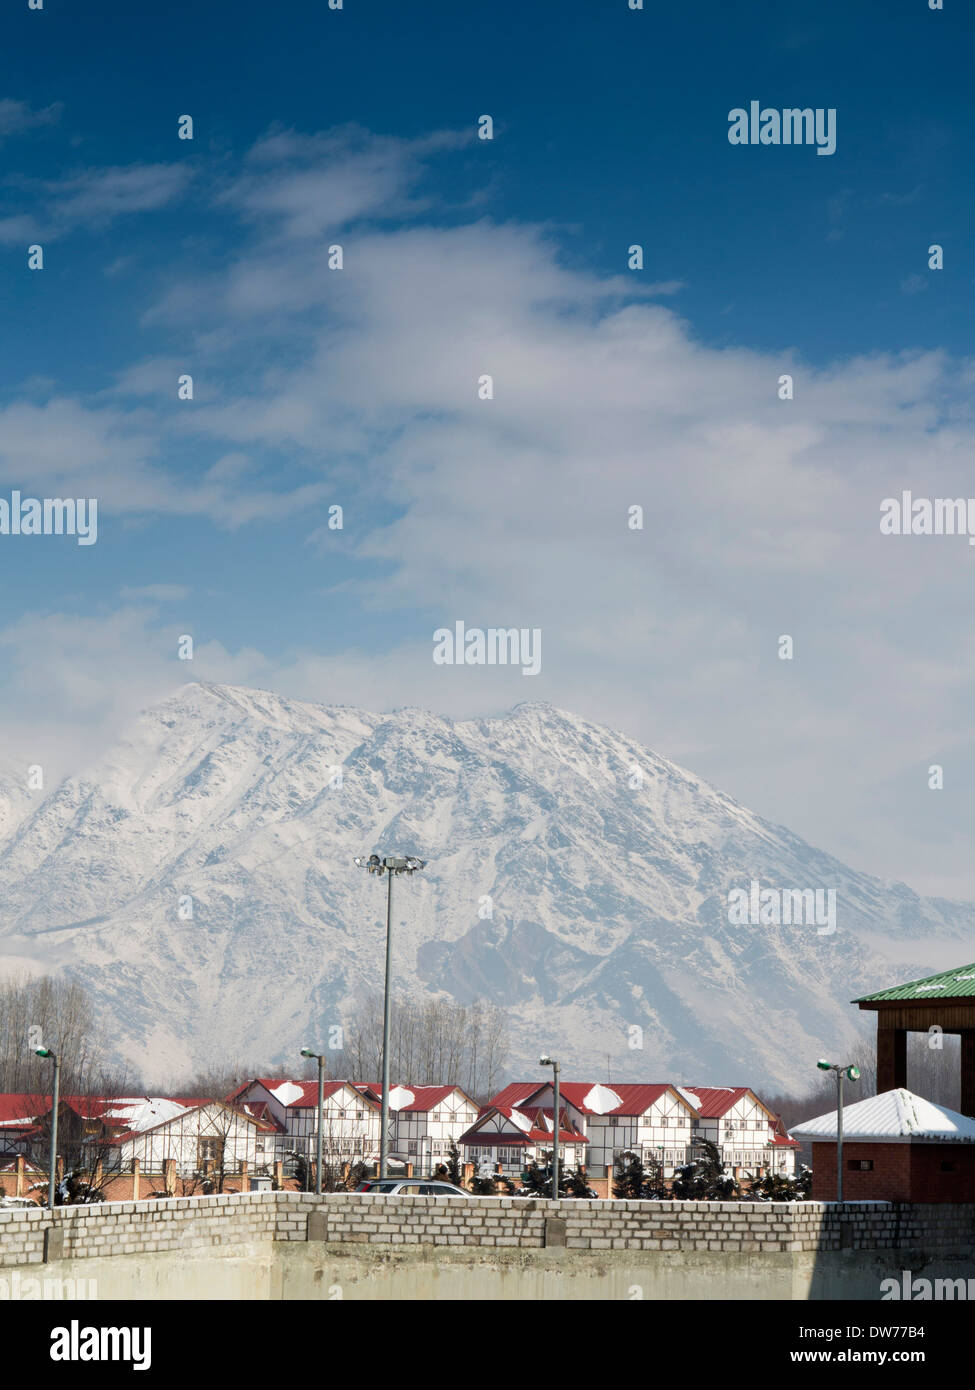 India, Kashmir, Nowgam, Srinagar Railway station, newly built housing below snow clad mountain - Stock Image